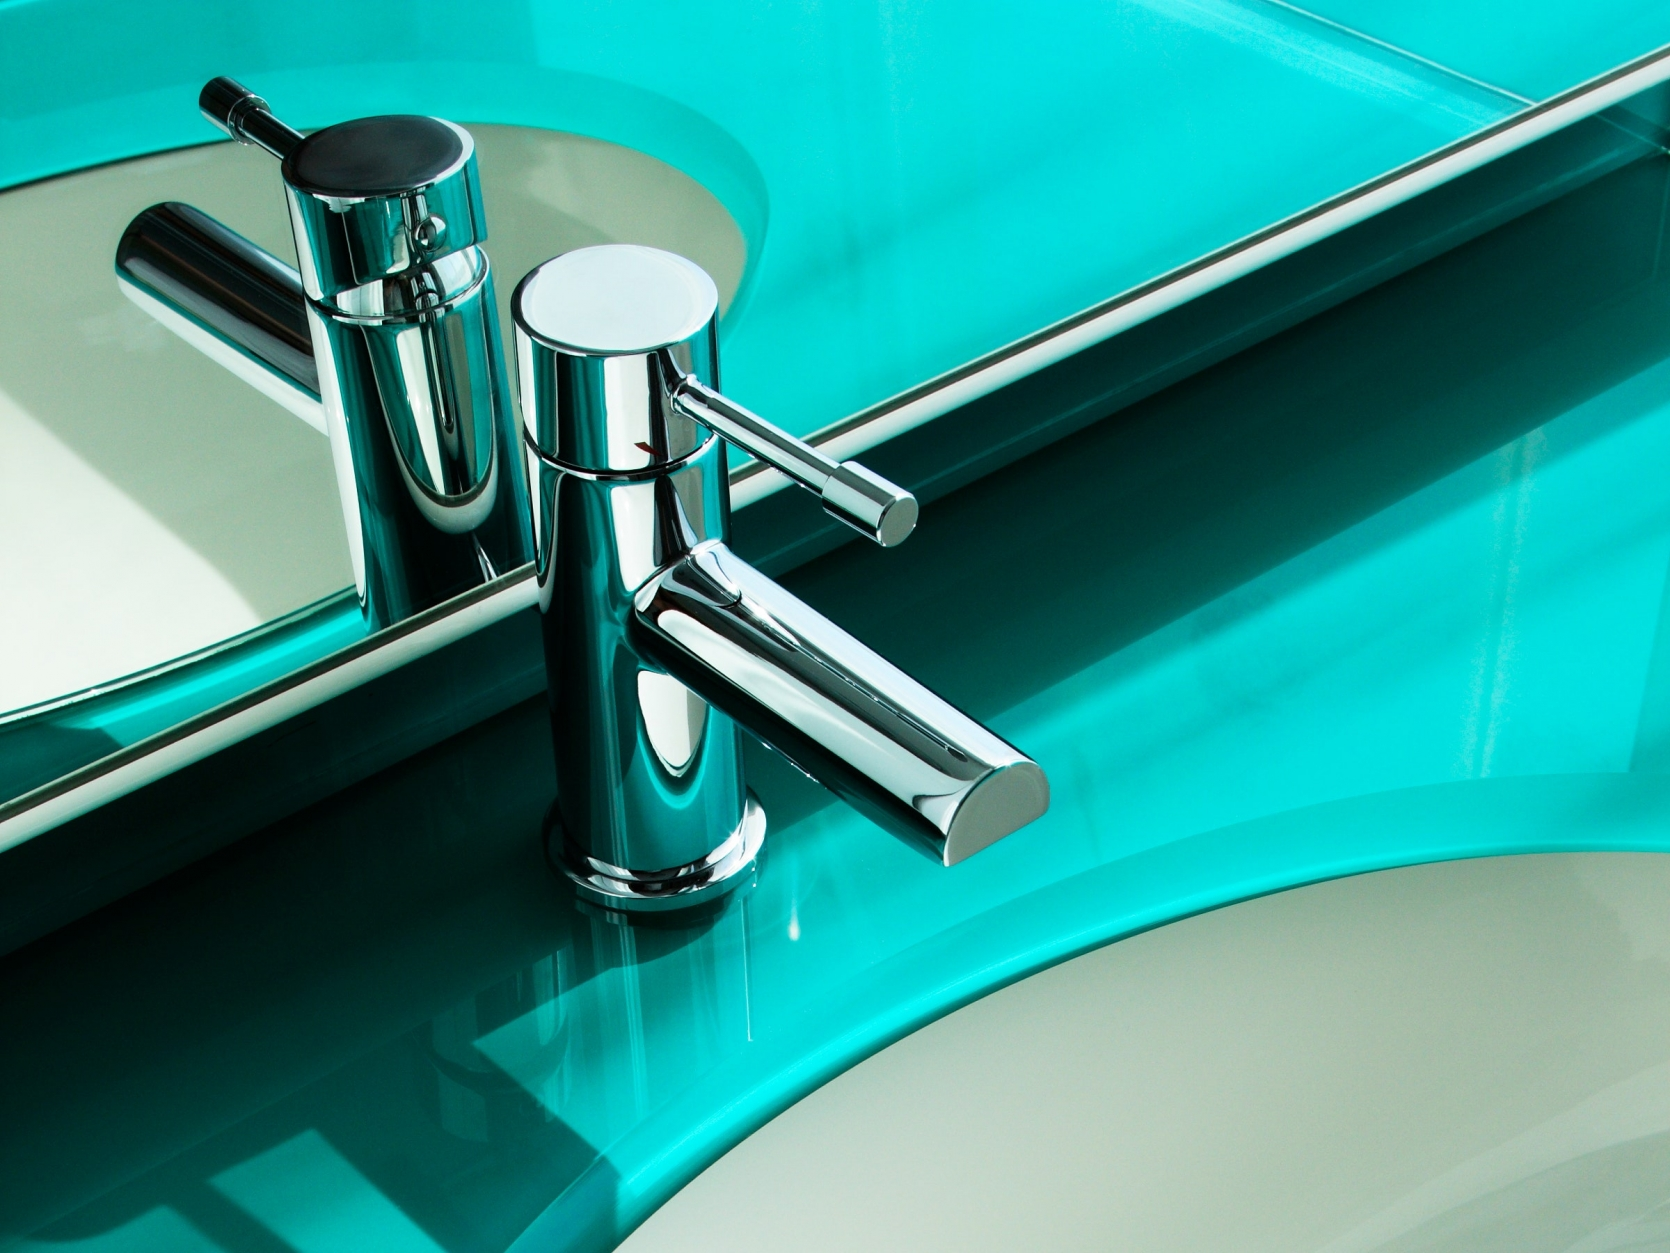 A GLIMPSE AT THE SHINY, RITZY BATHROOM OF TOMORROW